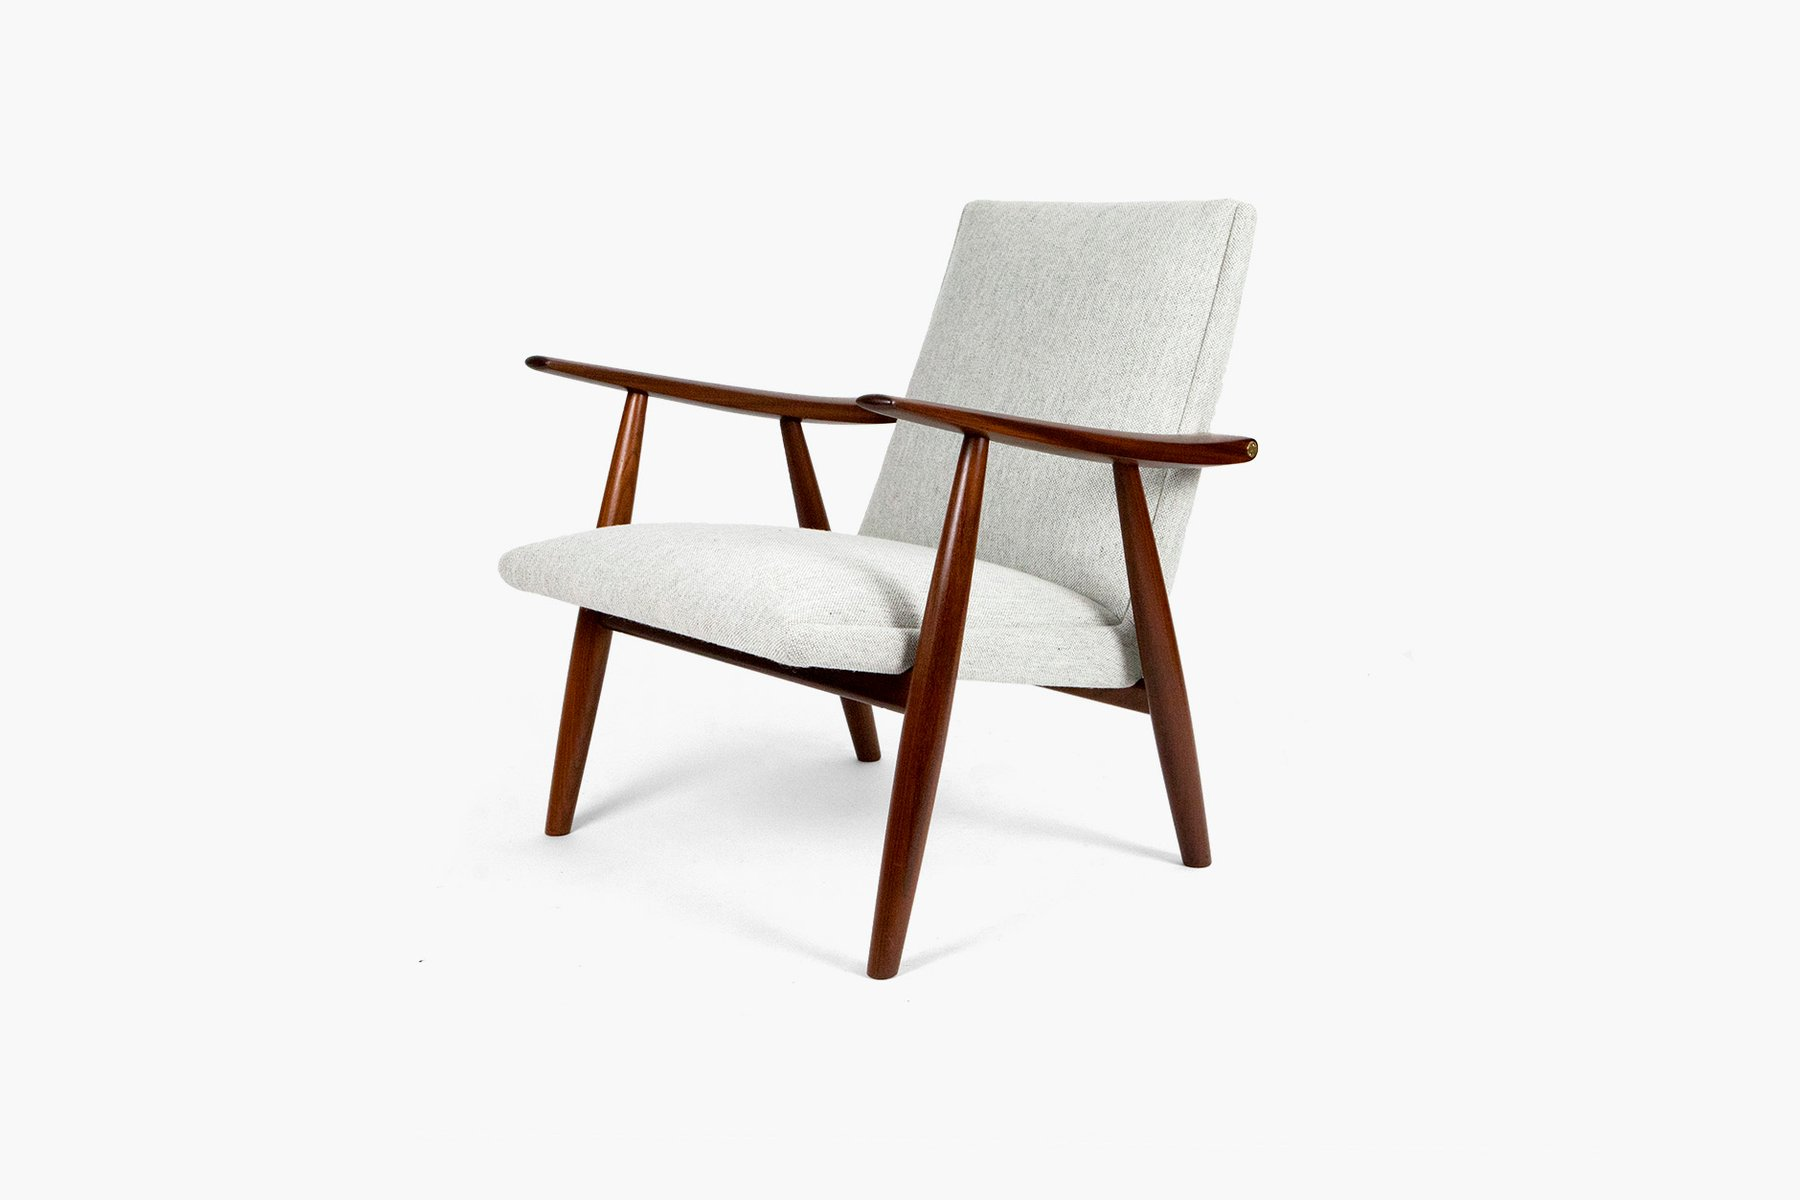 GE 260 Teak Lounge Chair by Hans J Wegner for Getama 1950s for sale at Pamono